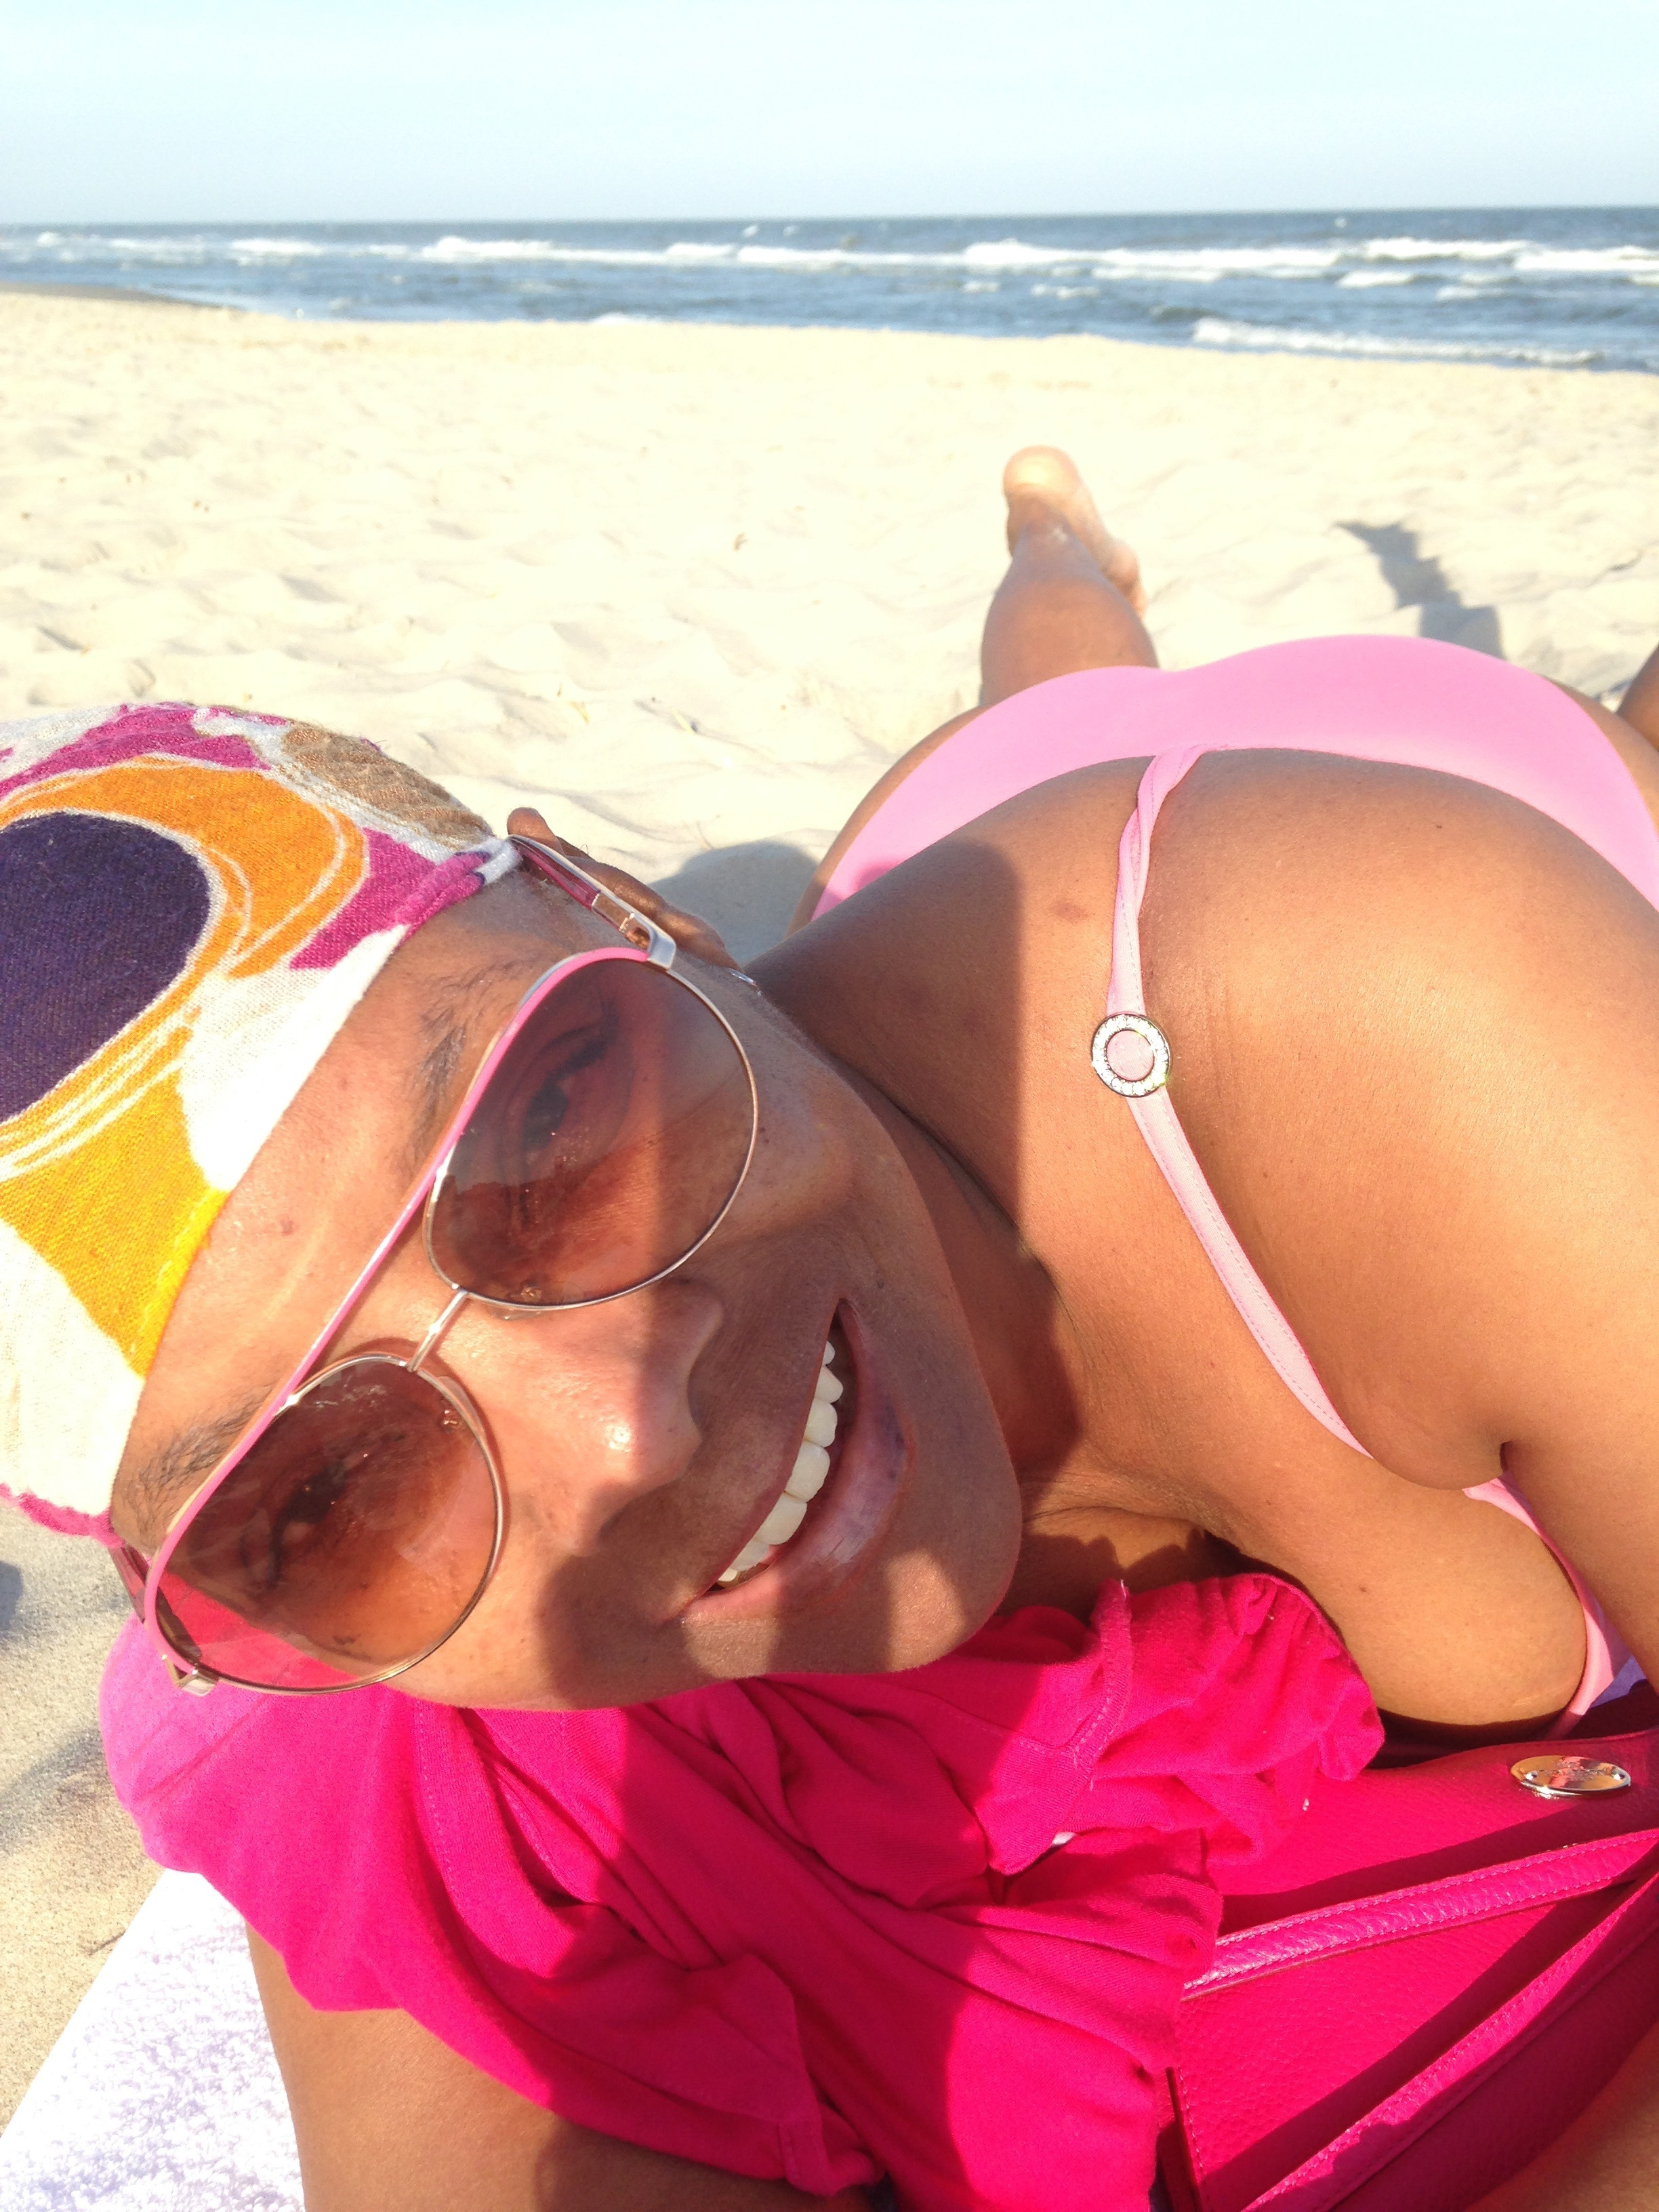 Atlantic City Memorial Day 2015. My head scarf kept me comfy & cozy on a cool day.